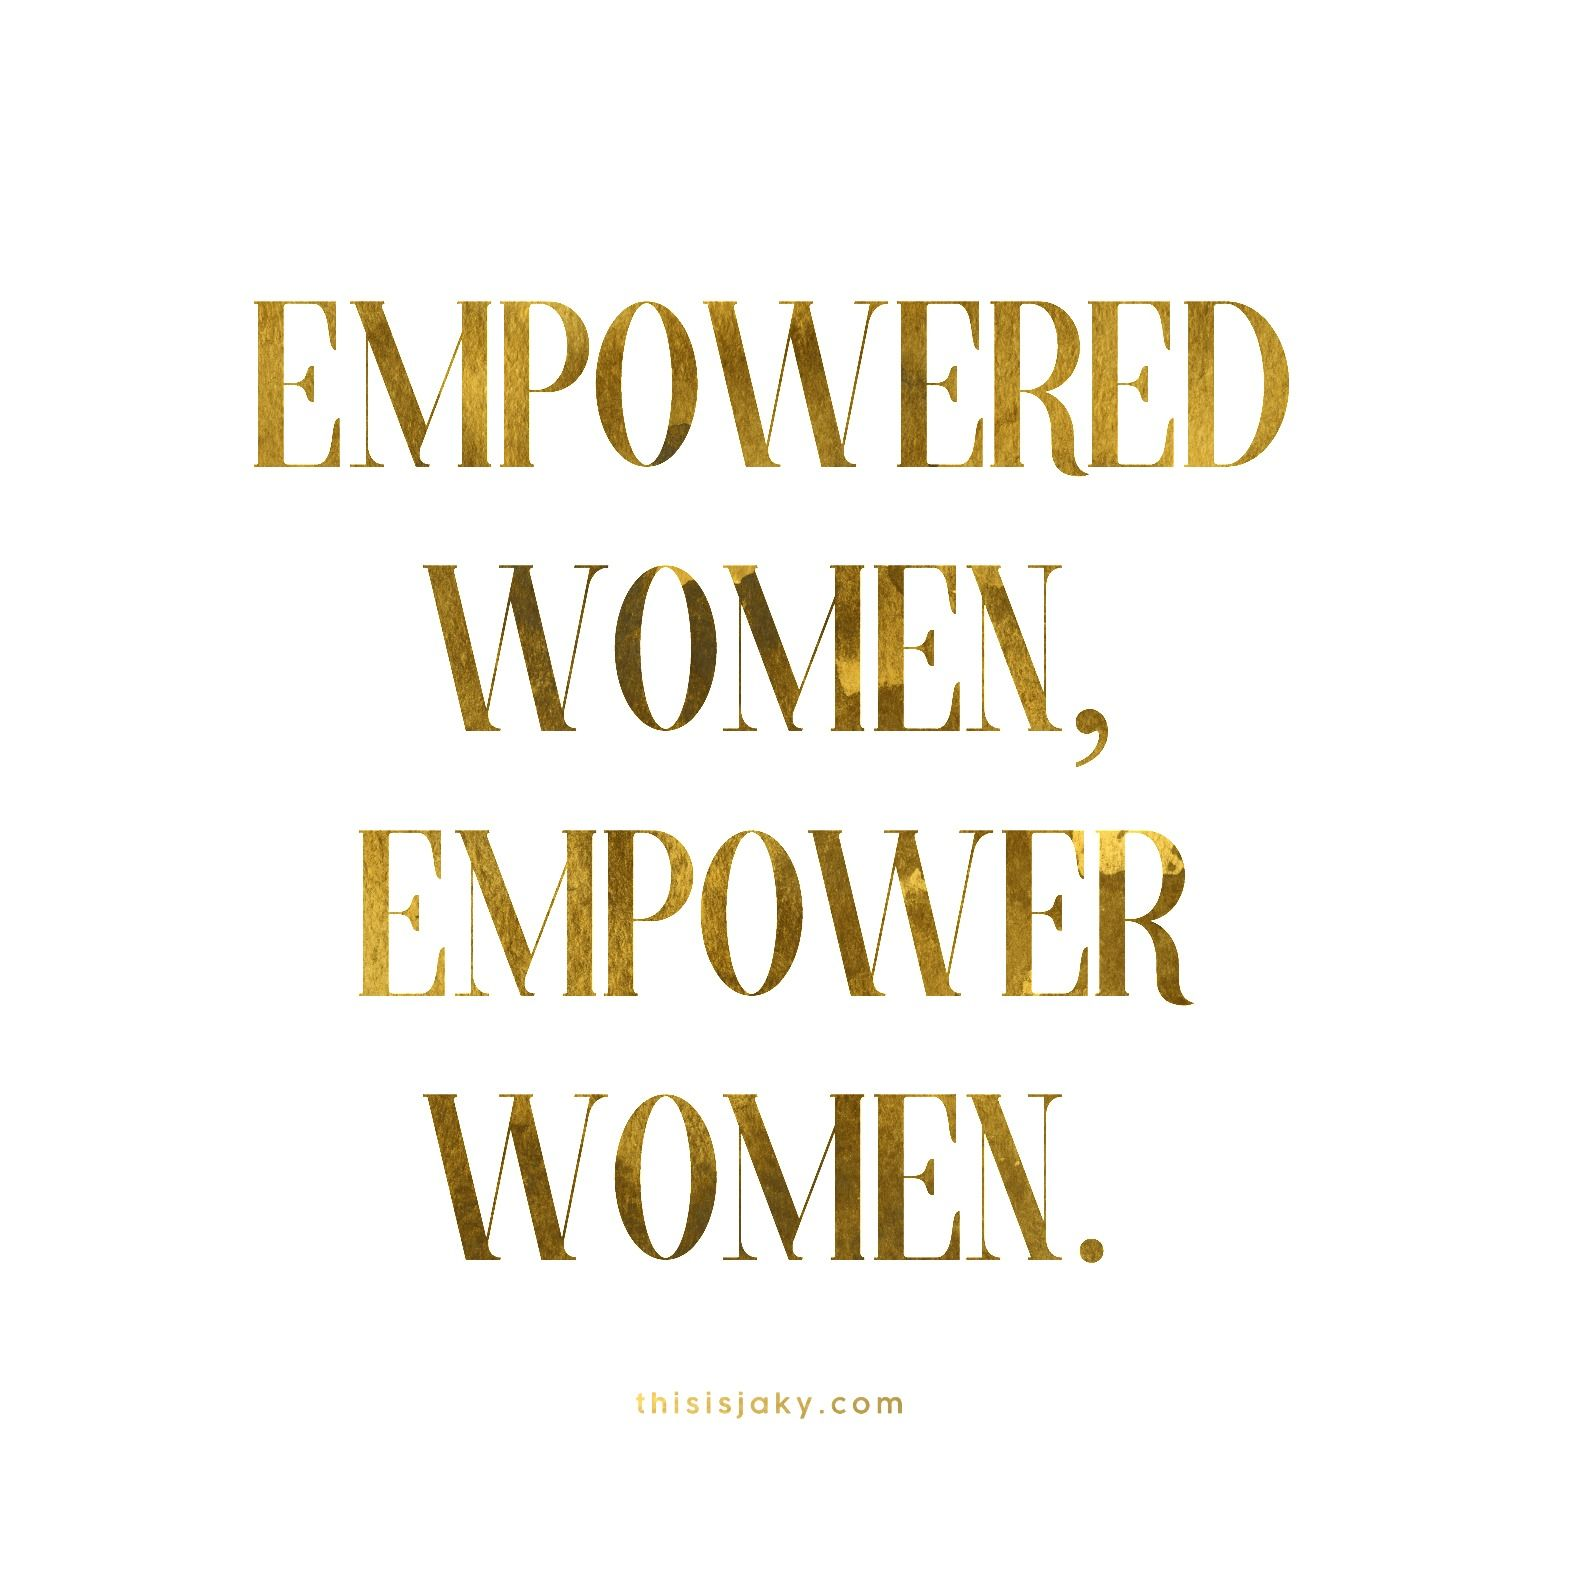 Quotes On Women Empowerment Don't Be A Hater Empowered Women Empower Women  Hustle  Quote